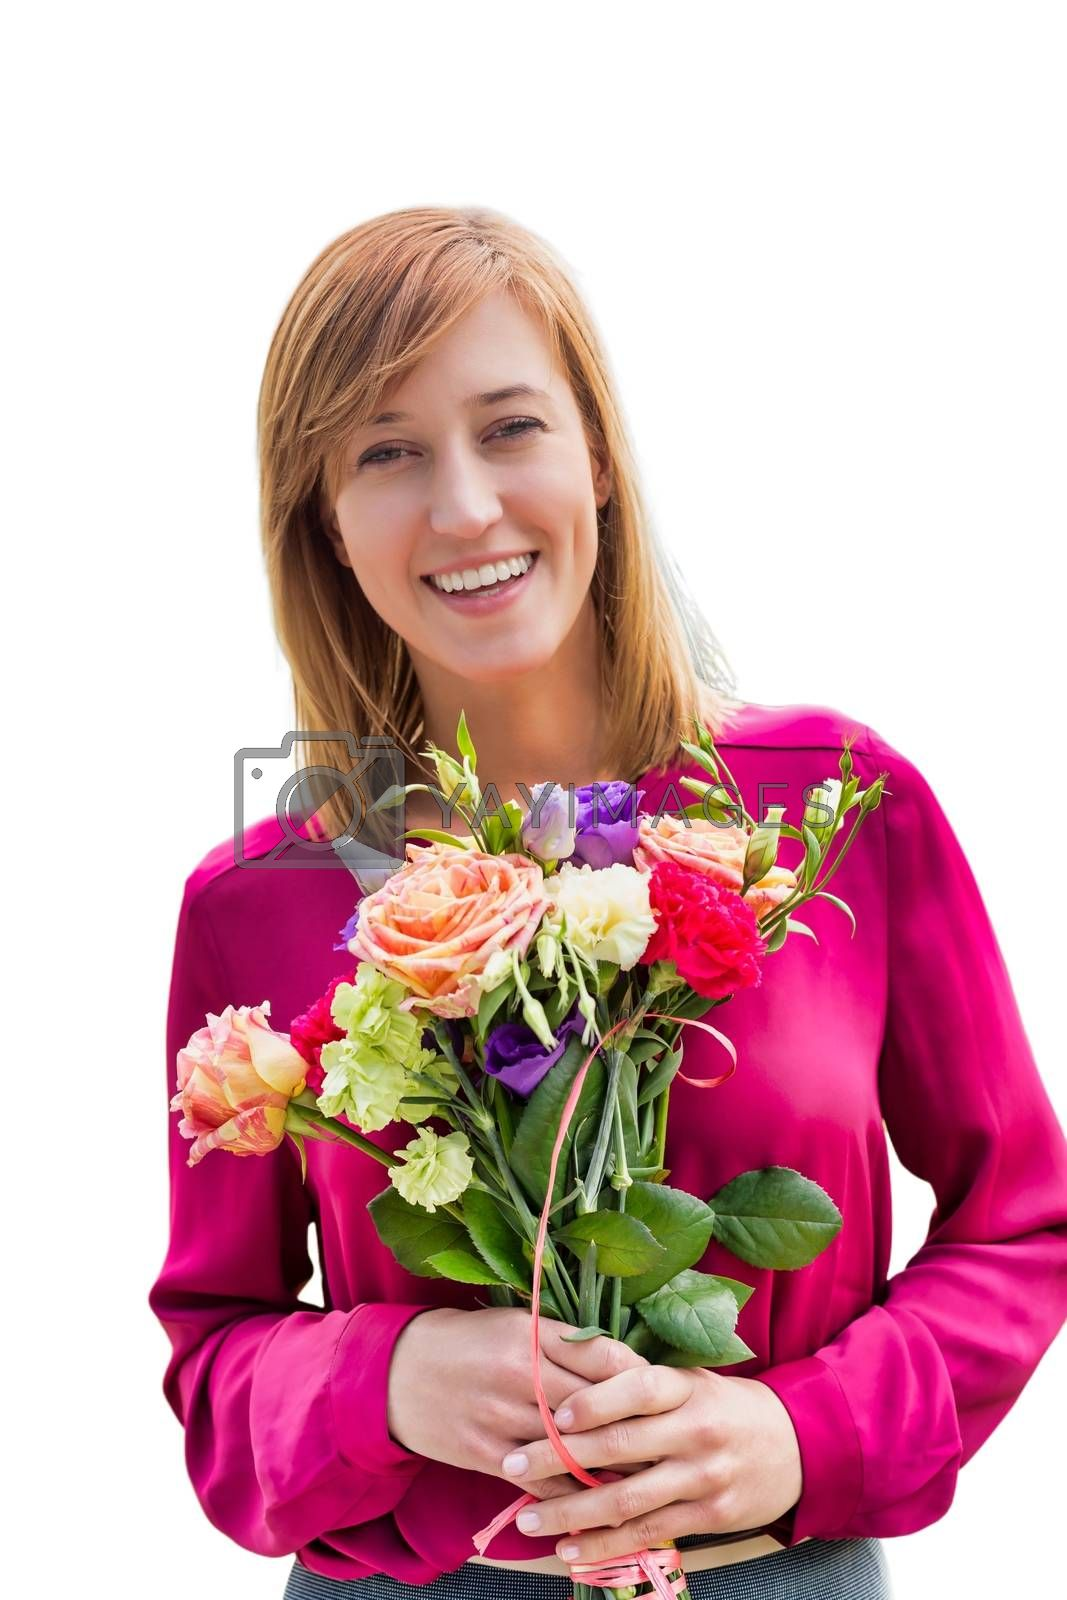 Cutout of Young attractive woman holding bouquet of flowers by moodboard